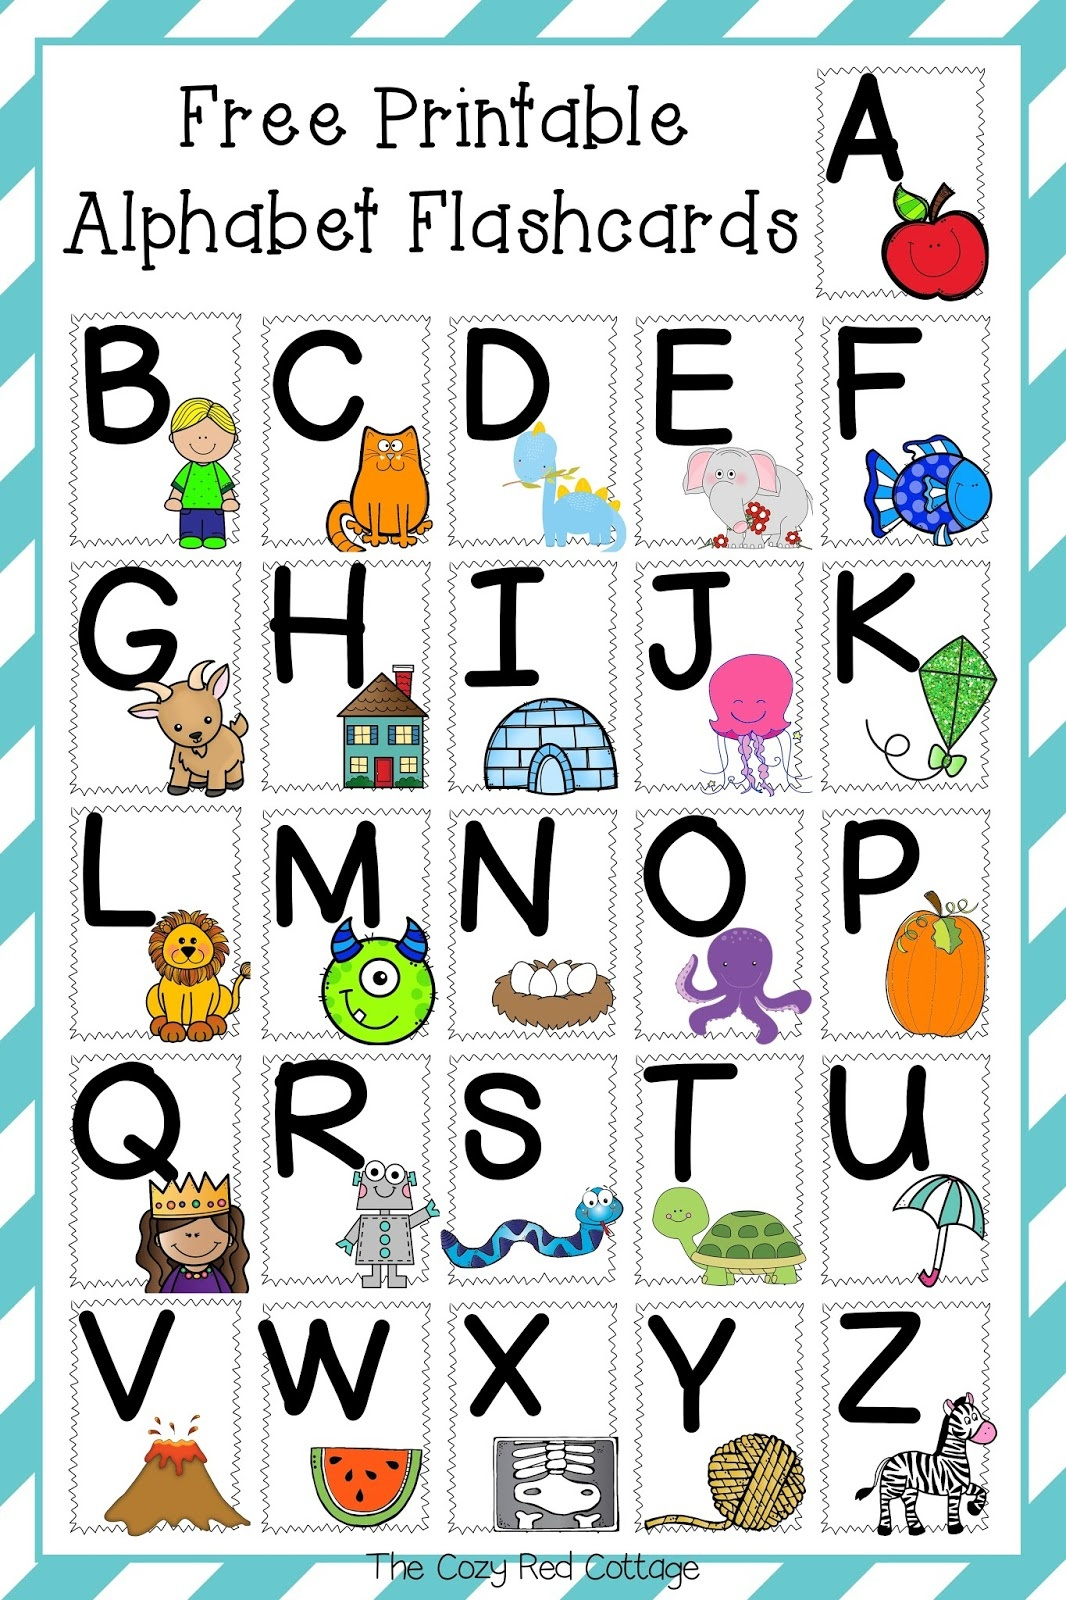 The Cozy Red Cottage: Free Printable Alphabet Flashcards - Free Printable Alphabet Cards With Pictures